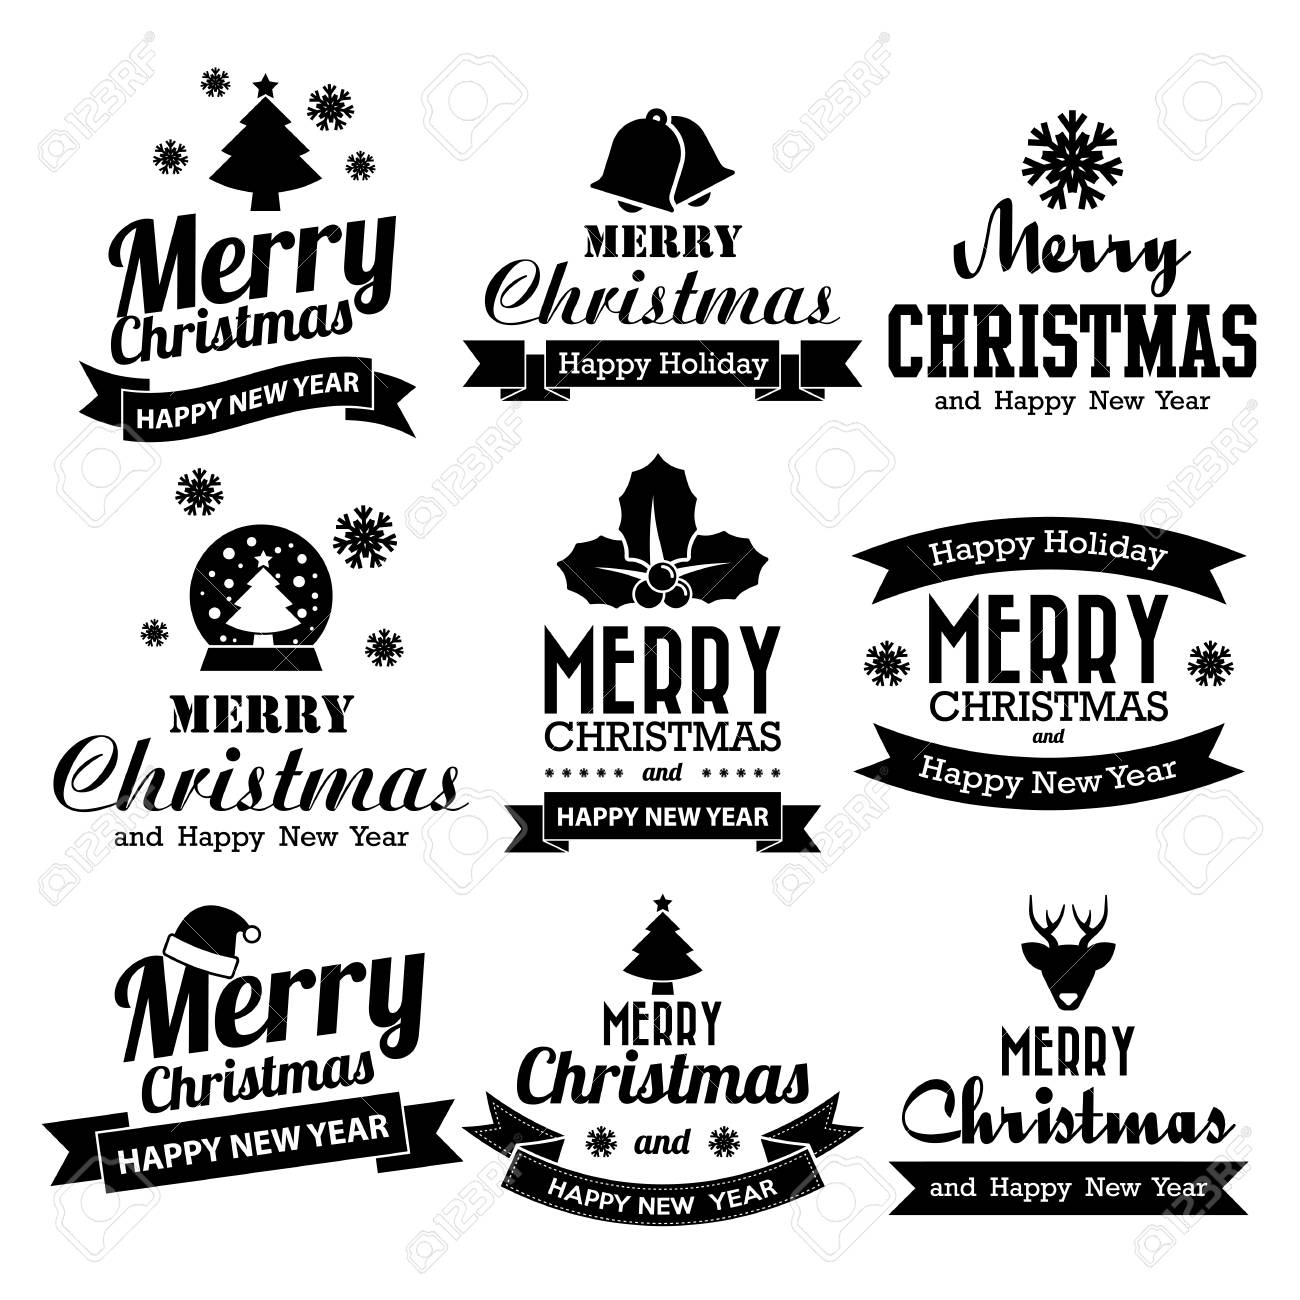 Christmas set of Calligraphic And Typographic Design With Labels, Illustration eps10 - 33615310